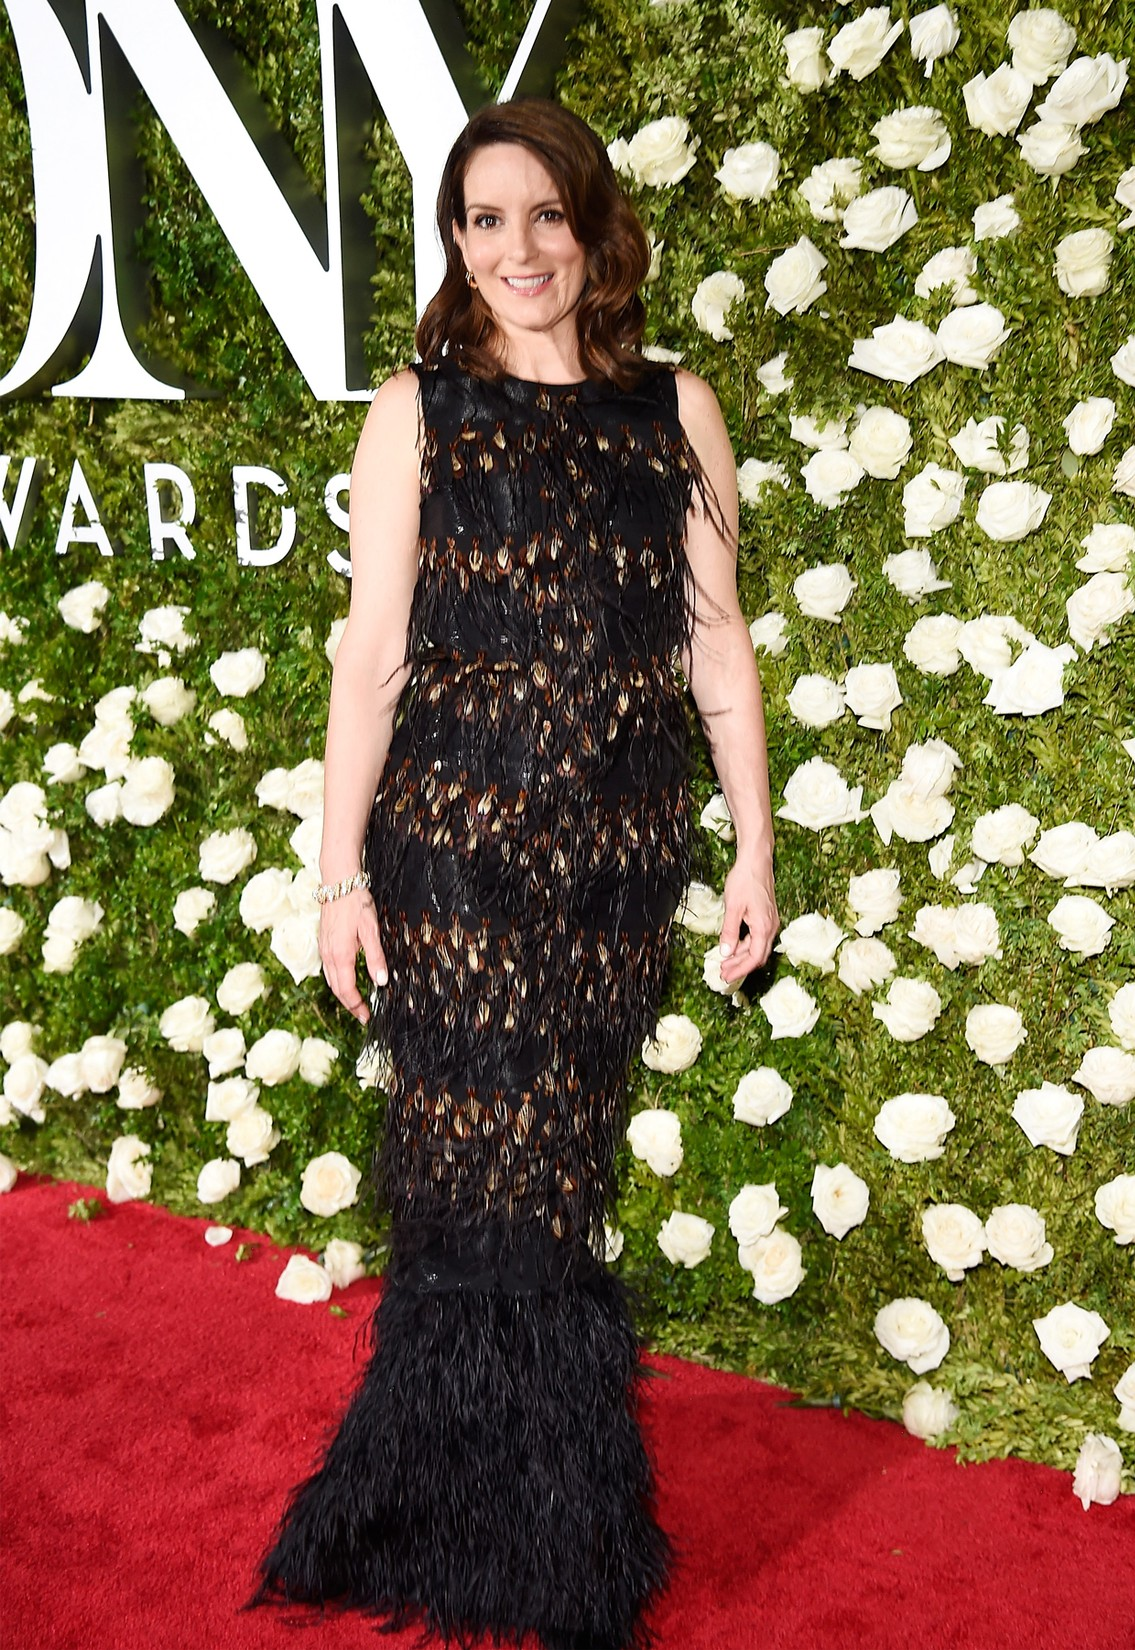 Tina Fey attends the 2017 Tony Awards at Radio City Music Hall on June 11, 2017 in New York City.